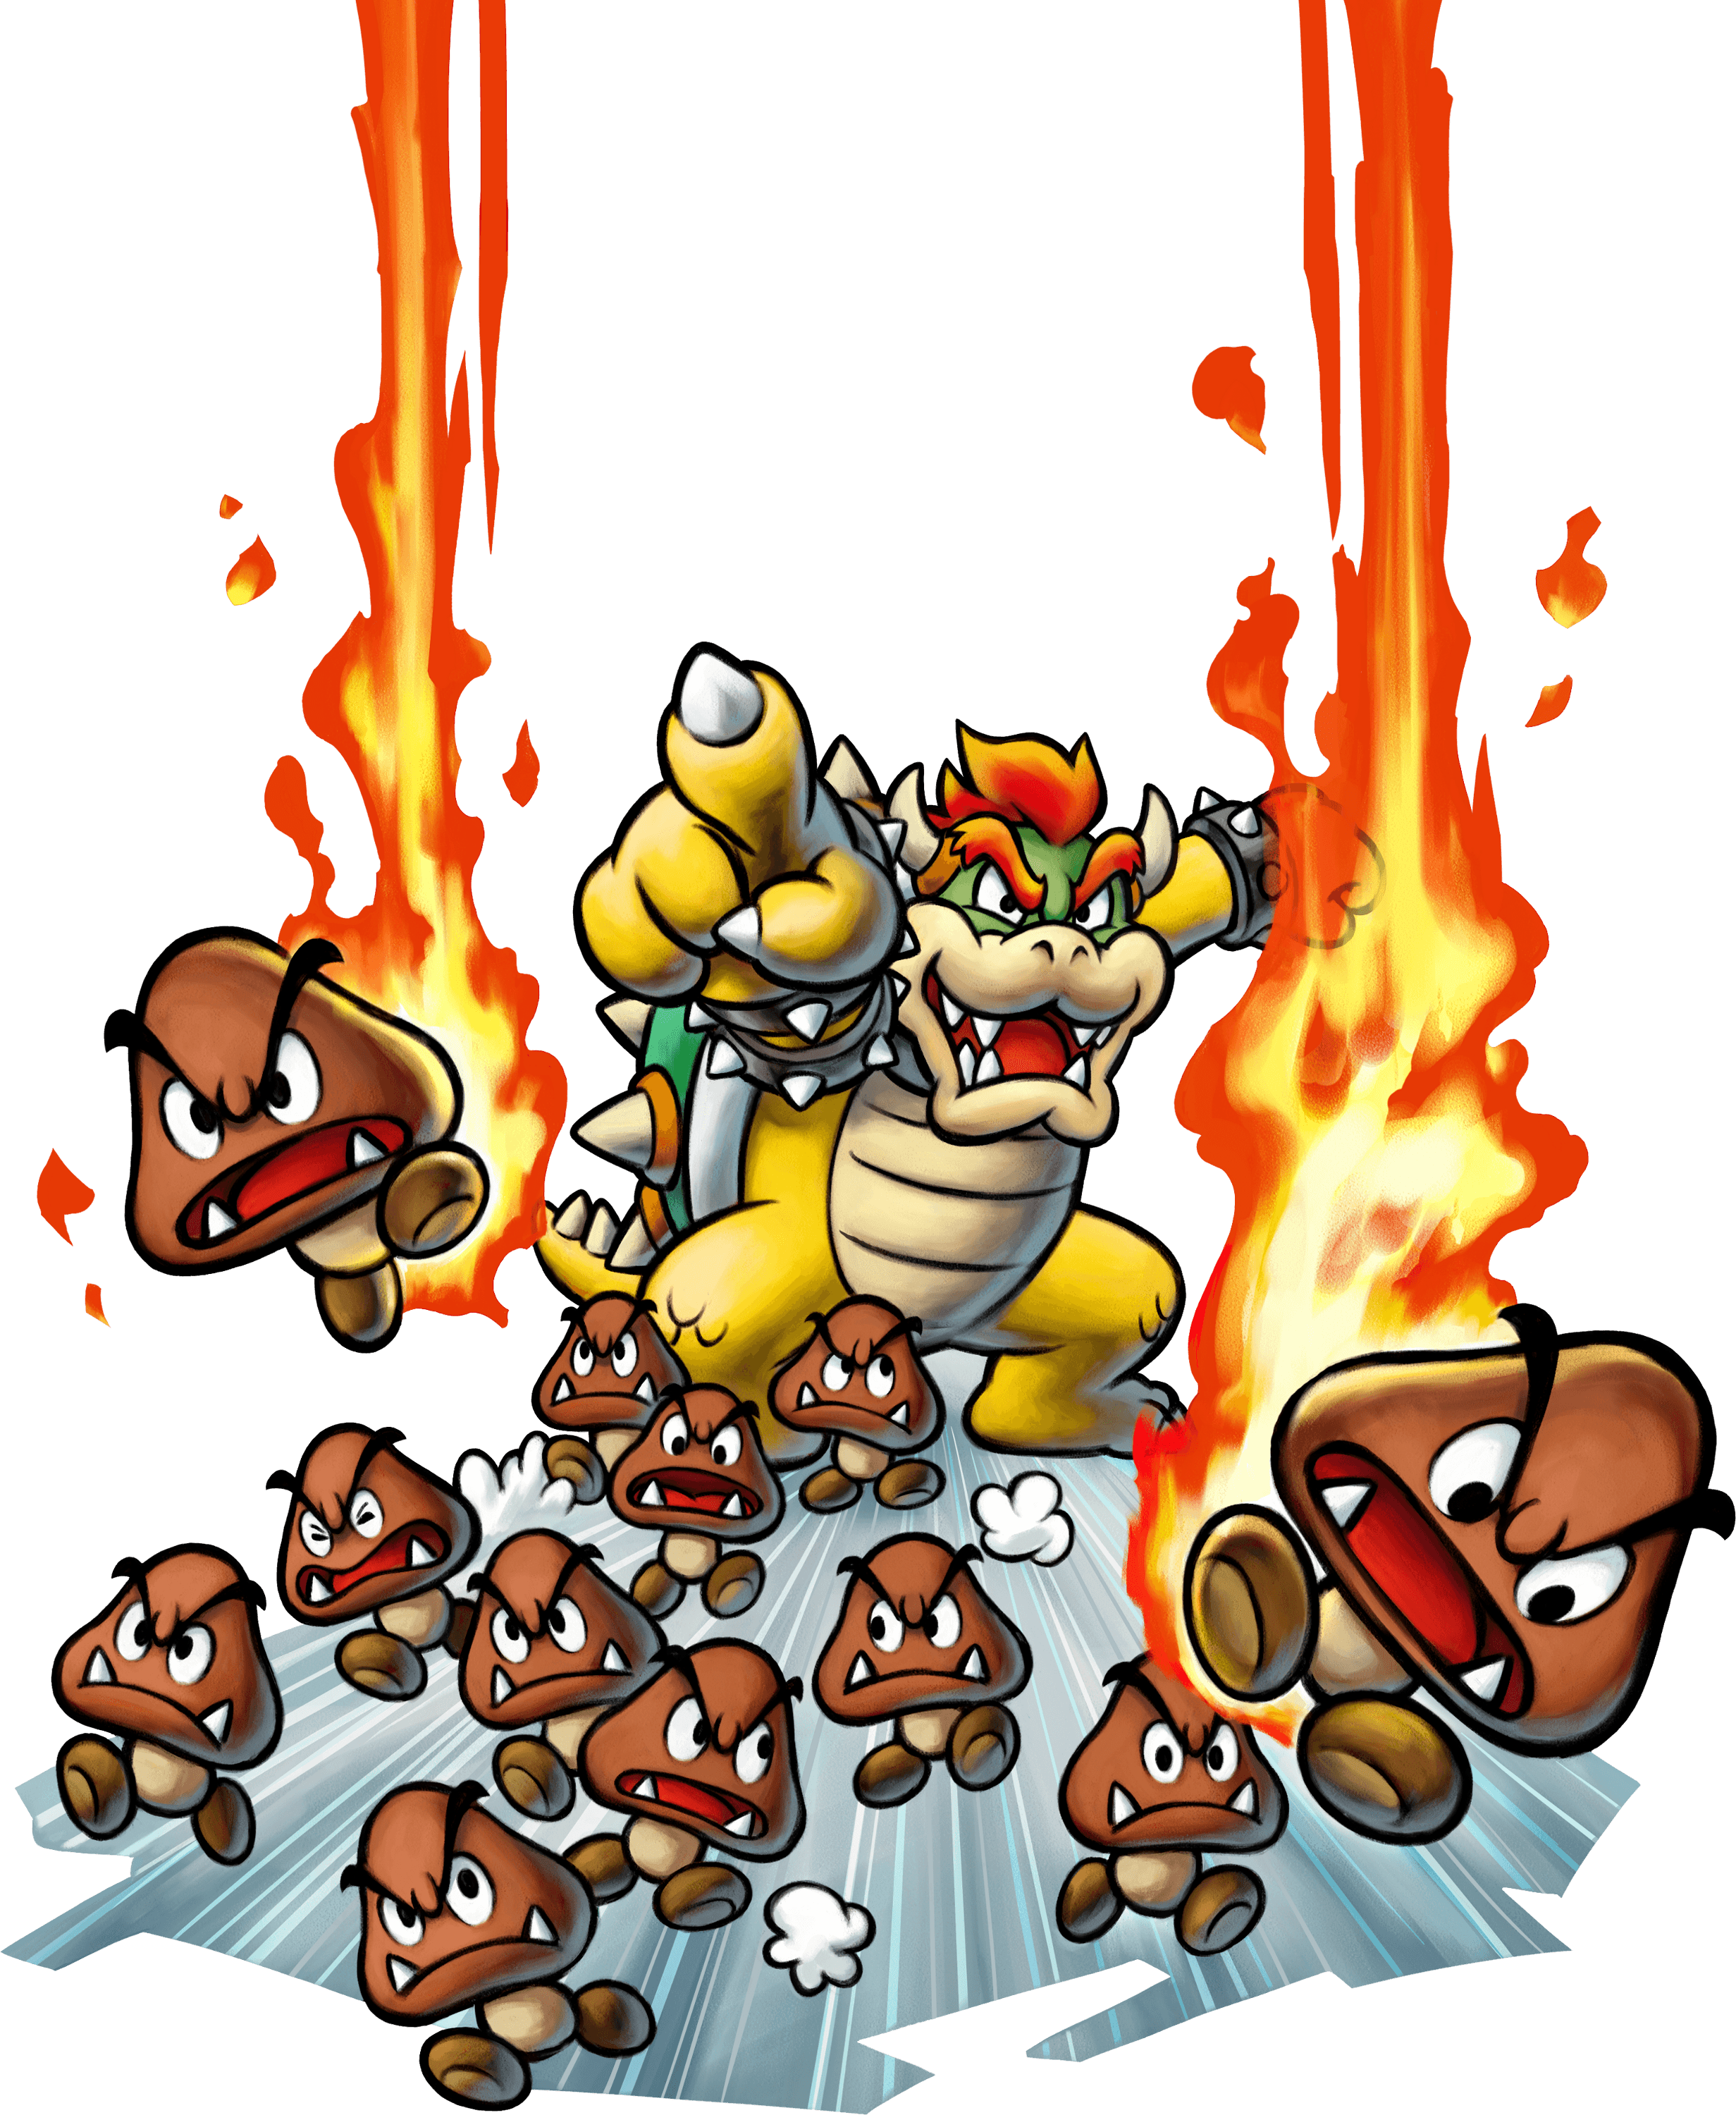 Mario Luigi Bowsers Inside Story Ds Artwork Including Enemies